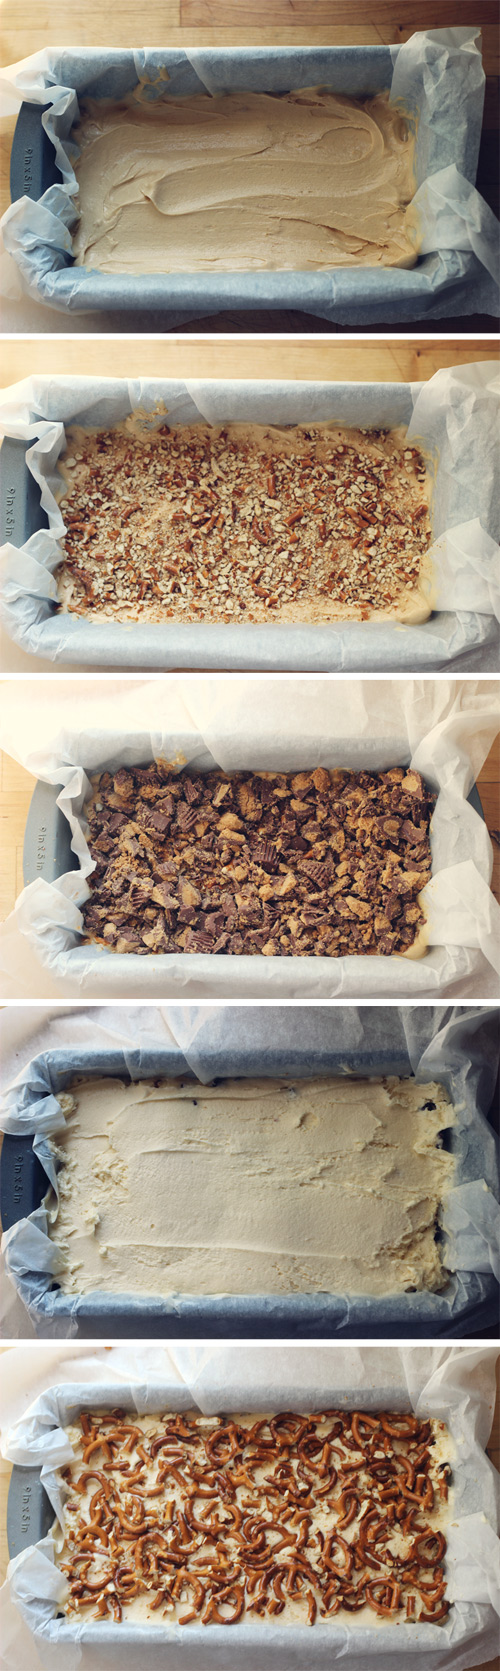 peanut-butter-cup-cake-steps